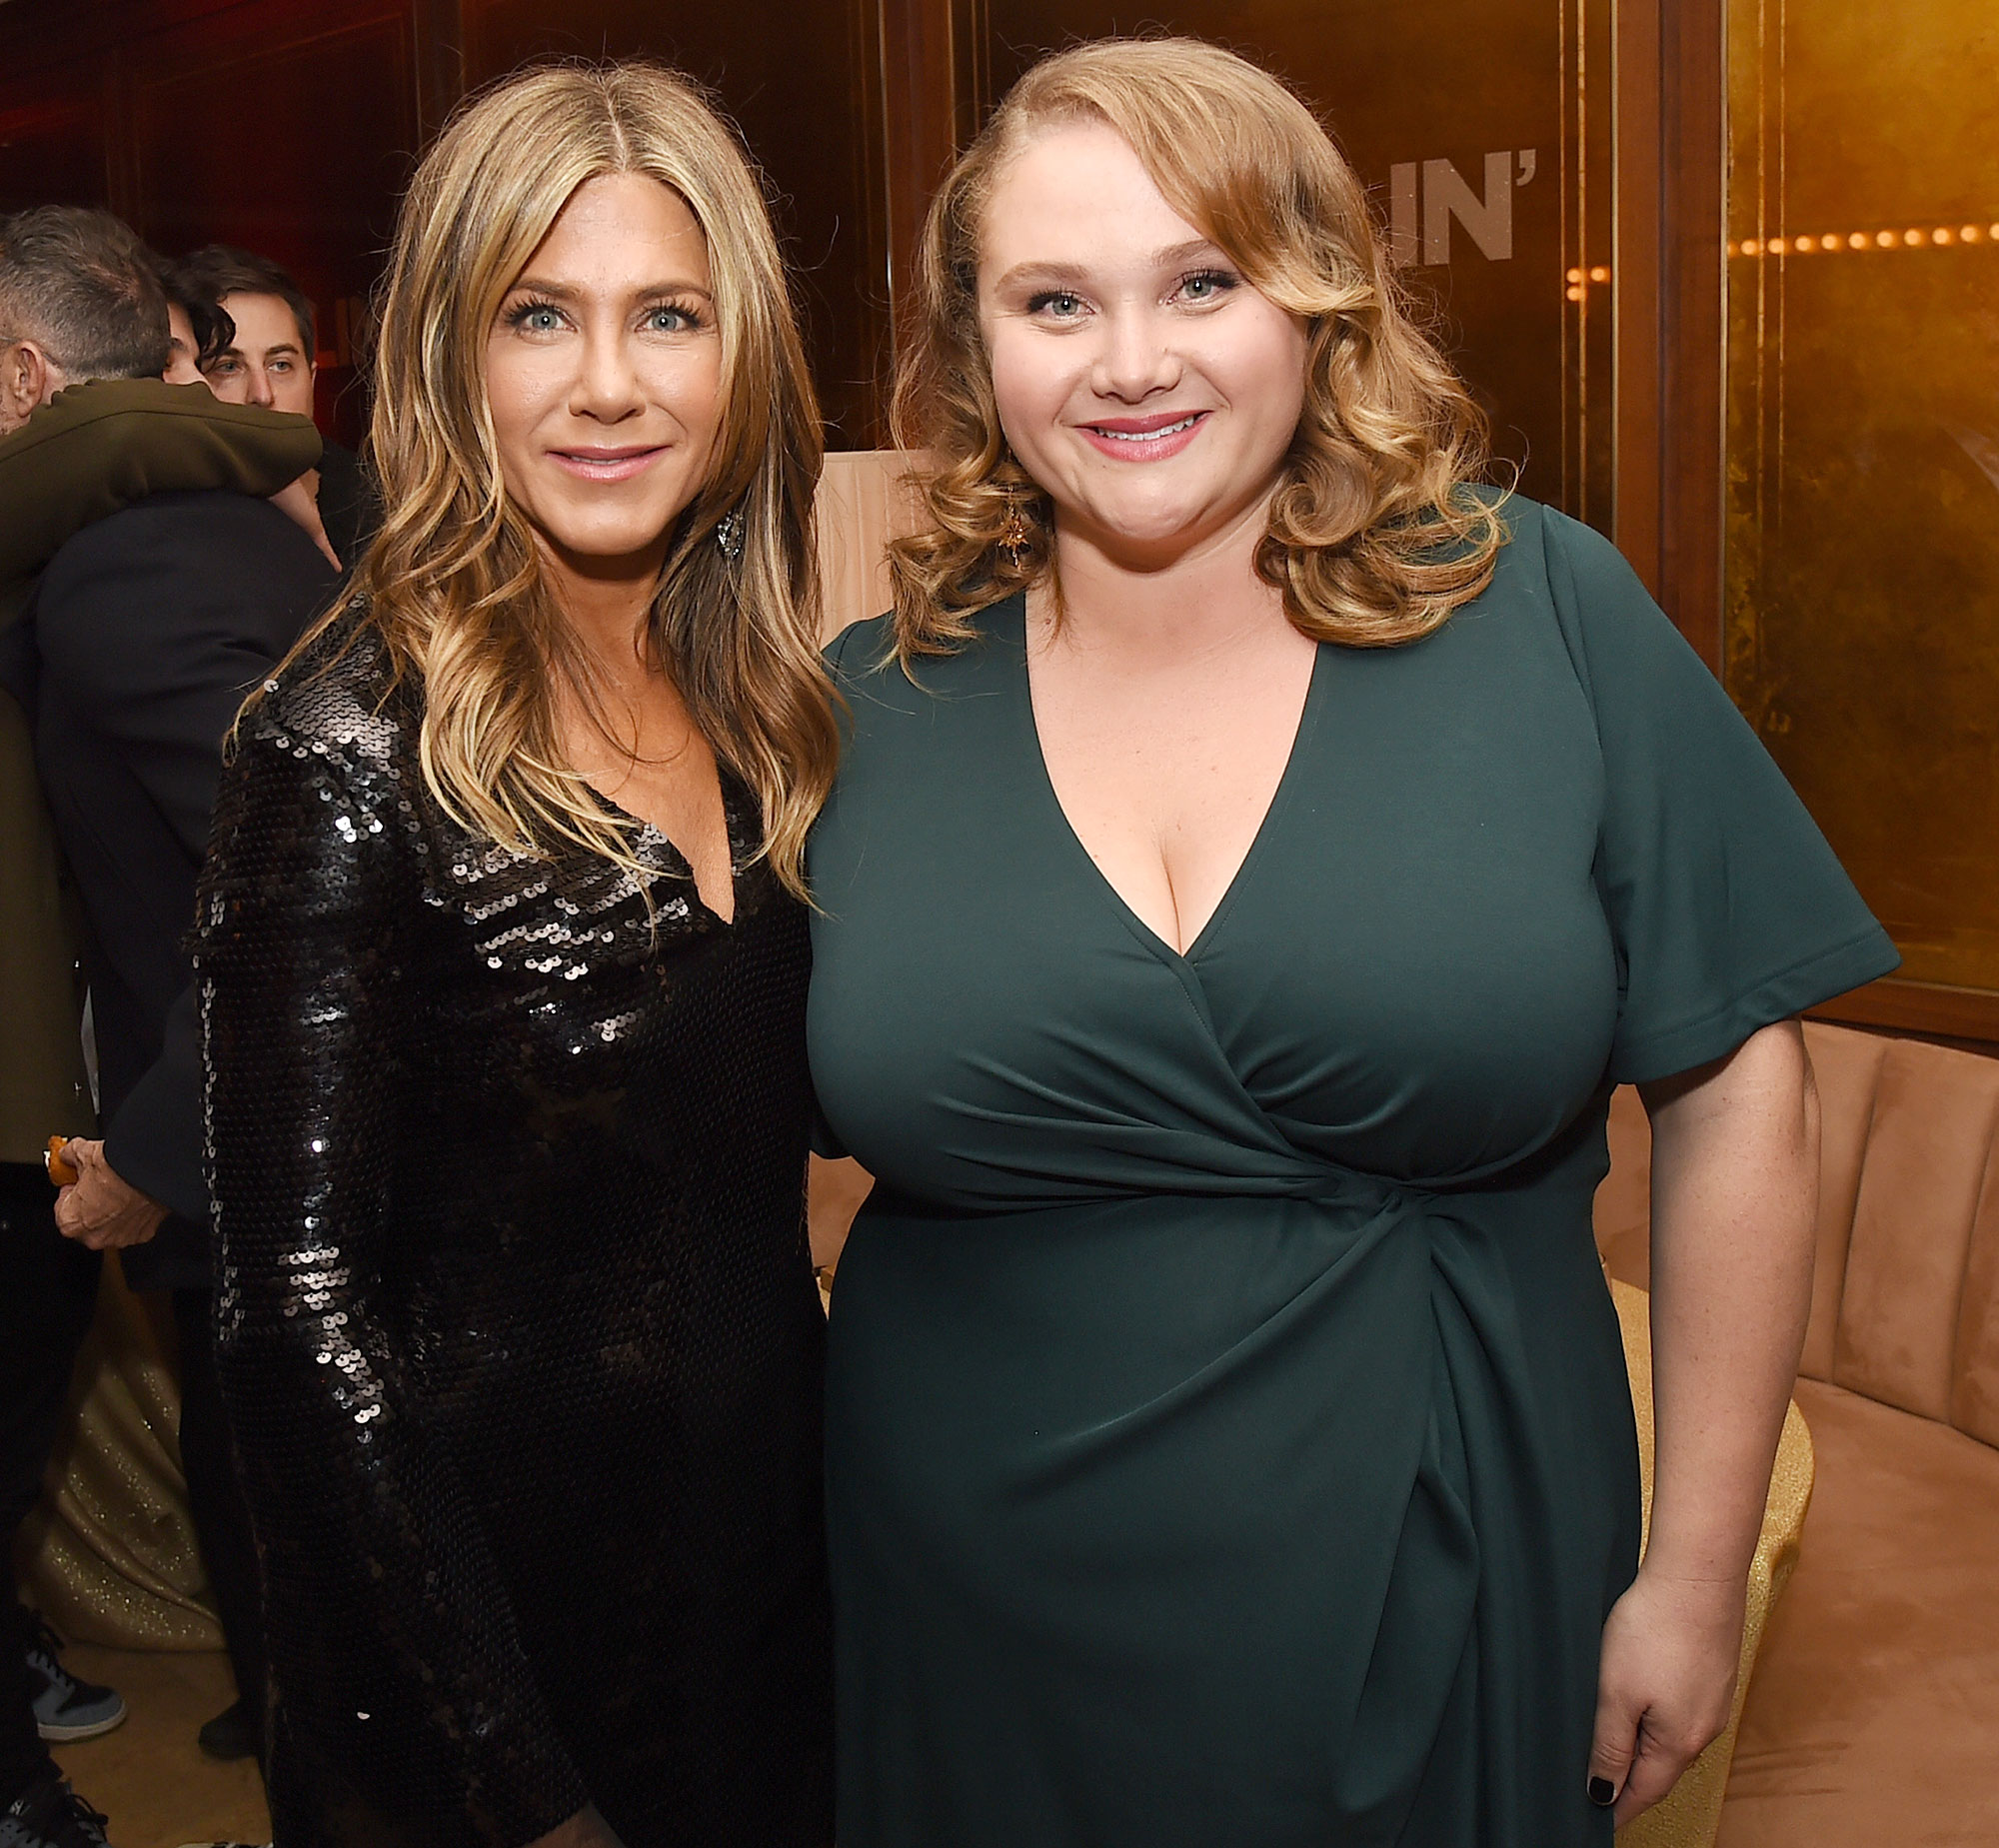 Danielle Macdonald Bonded With Jennifer Aniston Over Dogs